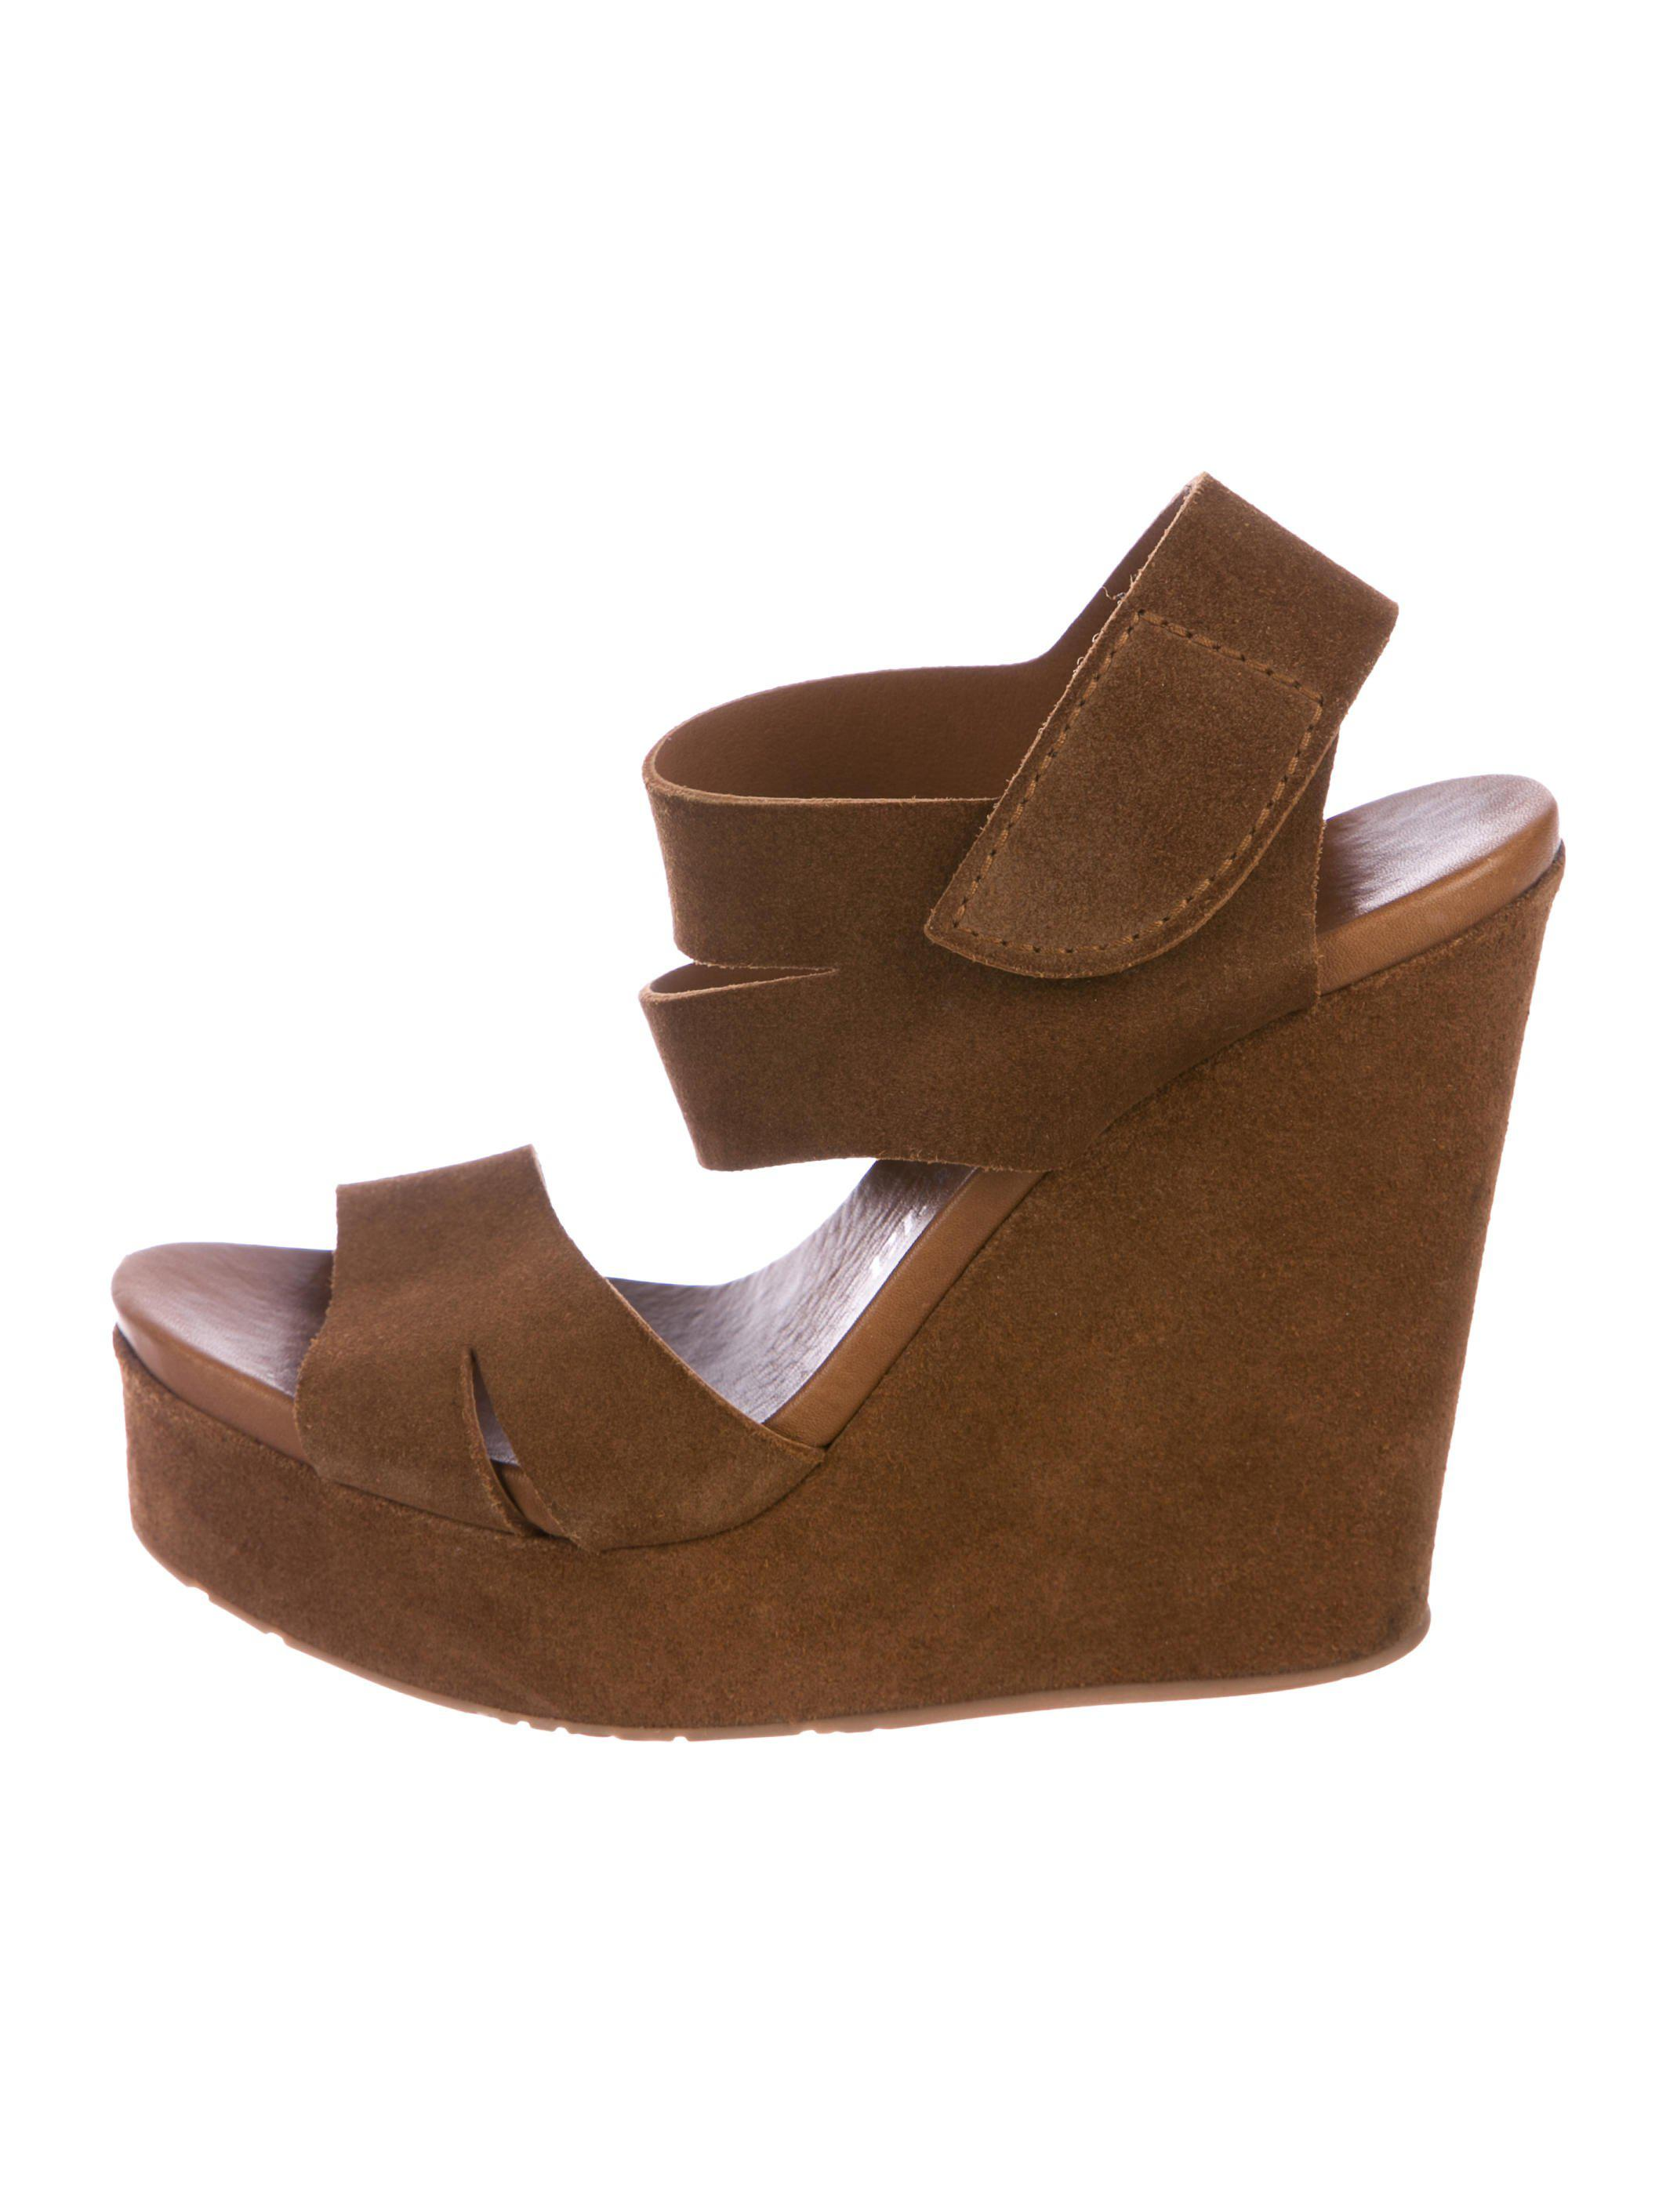 79ebb322c838 Lyst - Pedro Garcia Suede Platform Wedges in Brown